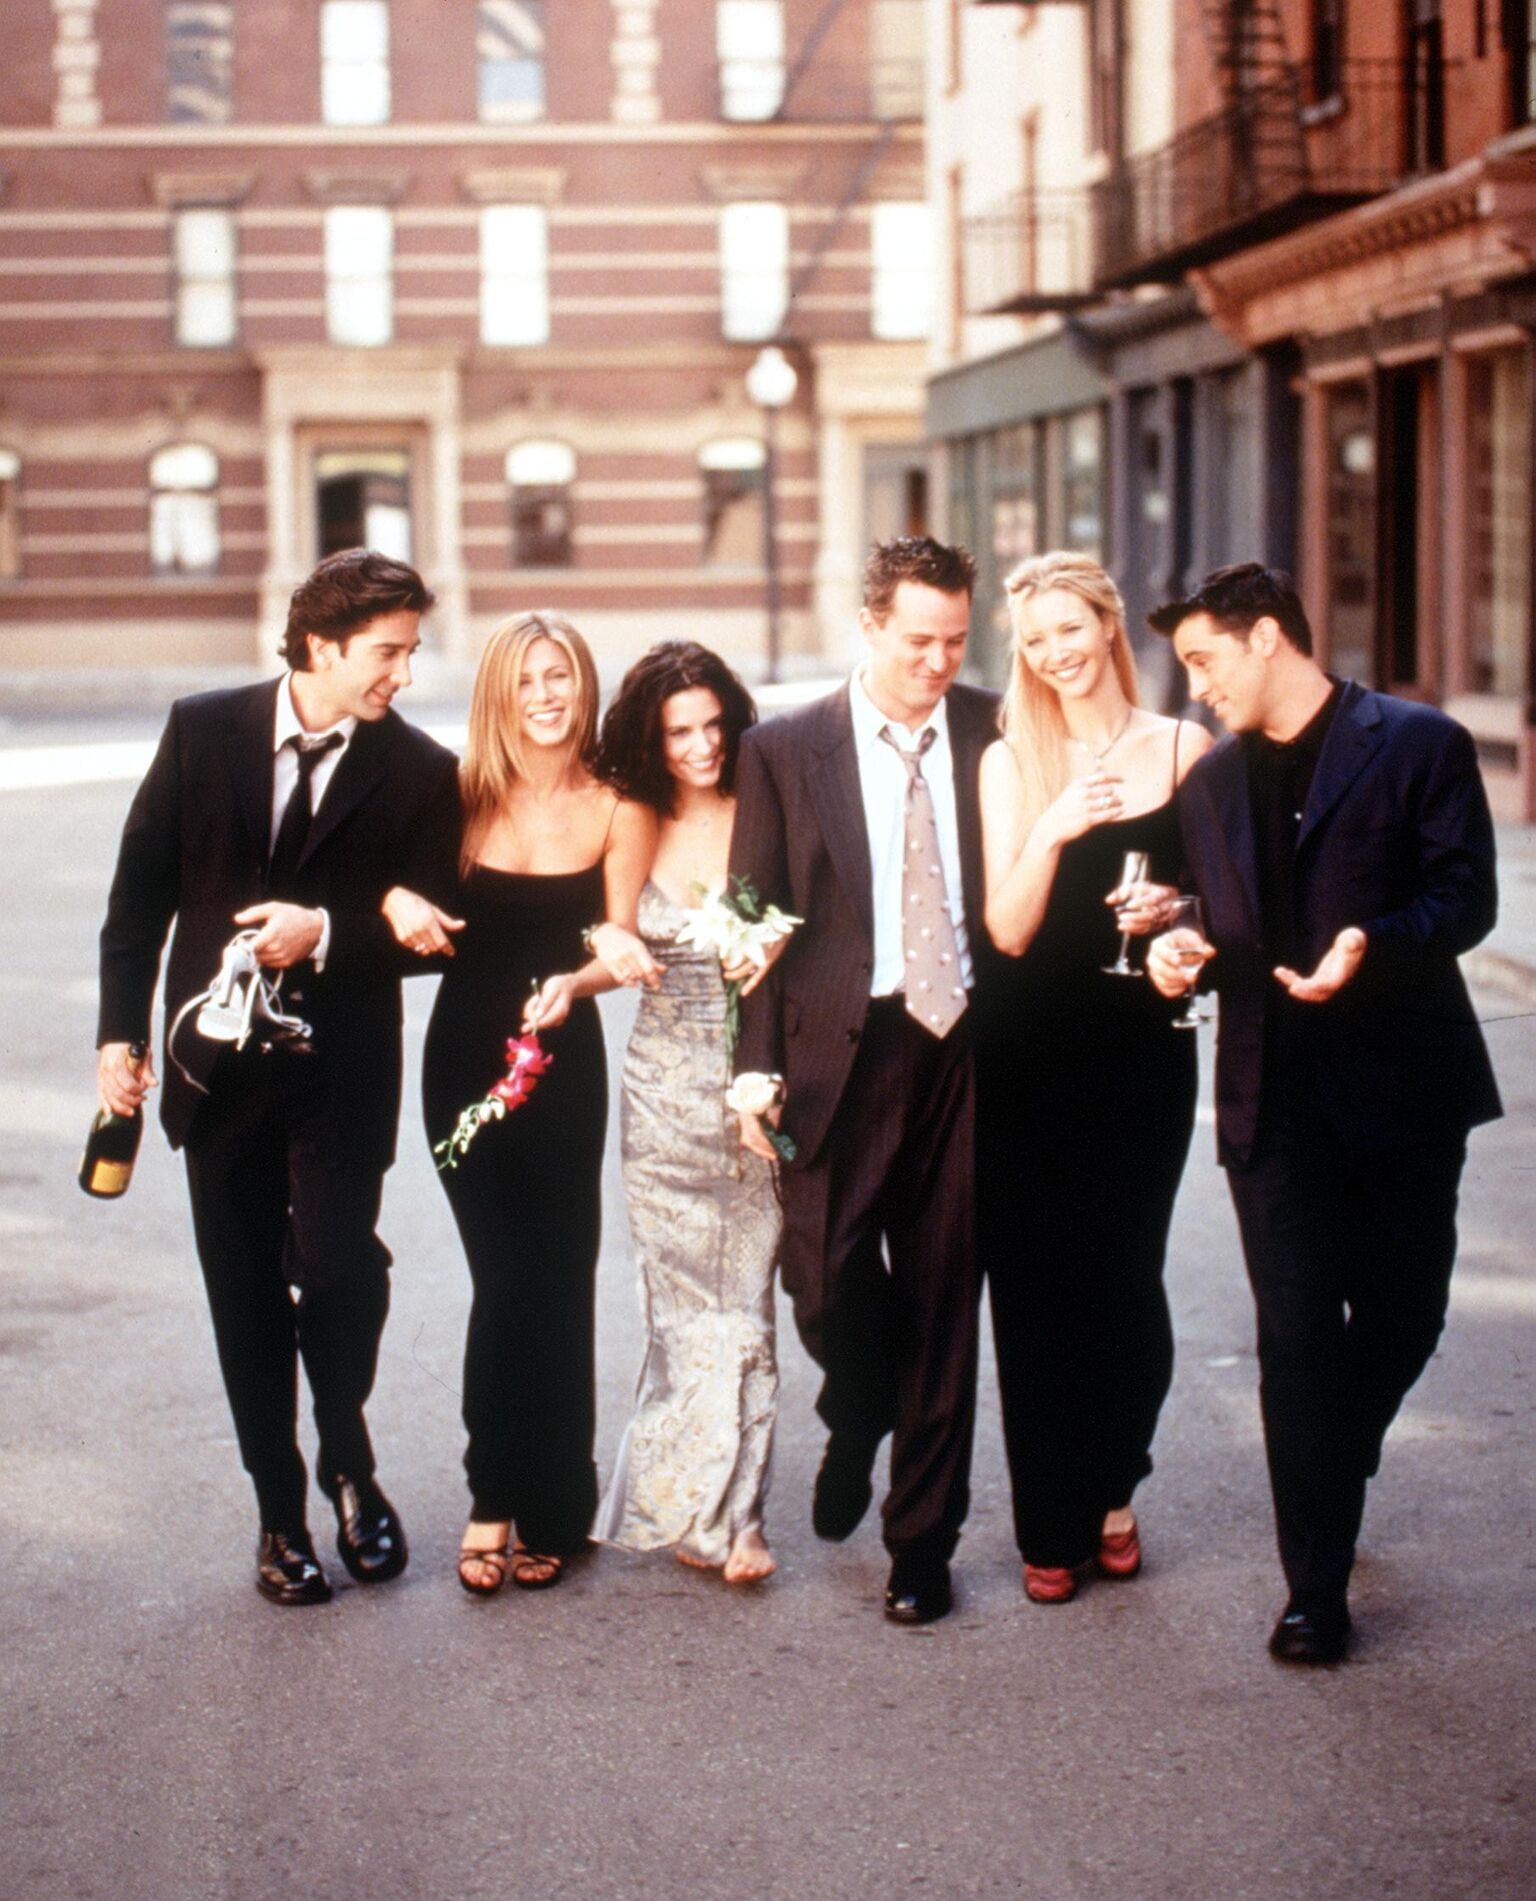 David Schwimmer, Jennifer Aniston, Courteney Cox Arquette, Matthew Perry, Lisa Kudrow And Matt Leblanc. | Getty Images